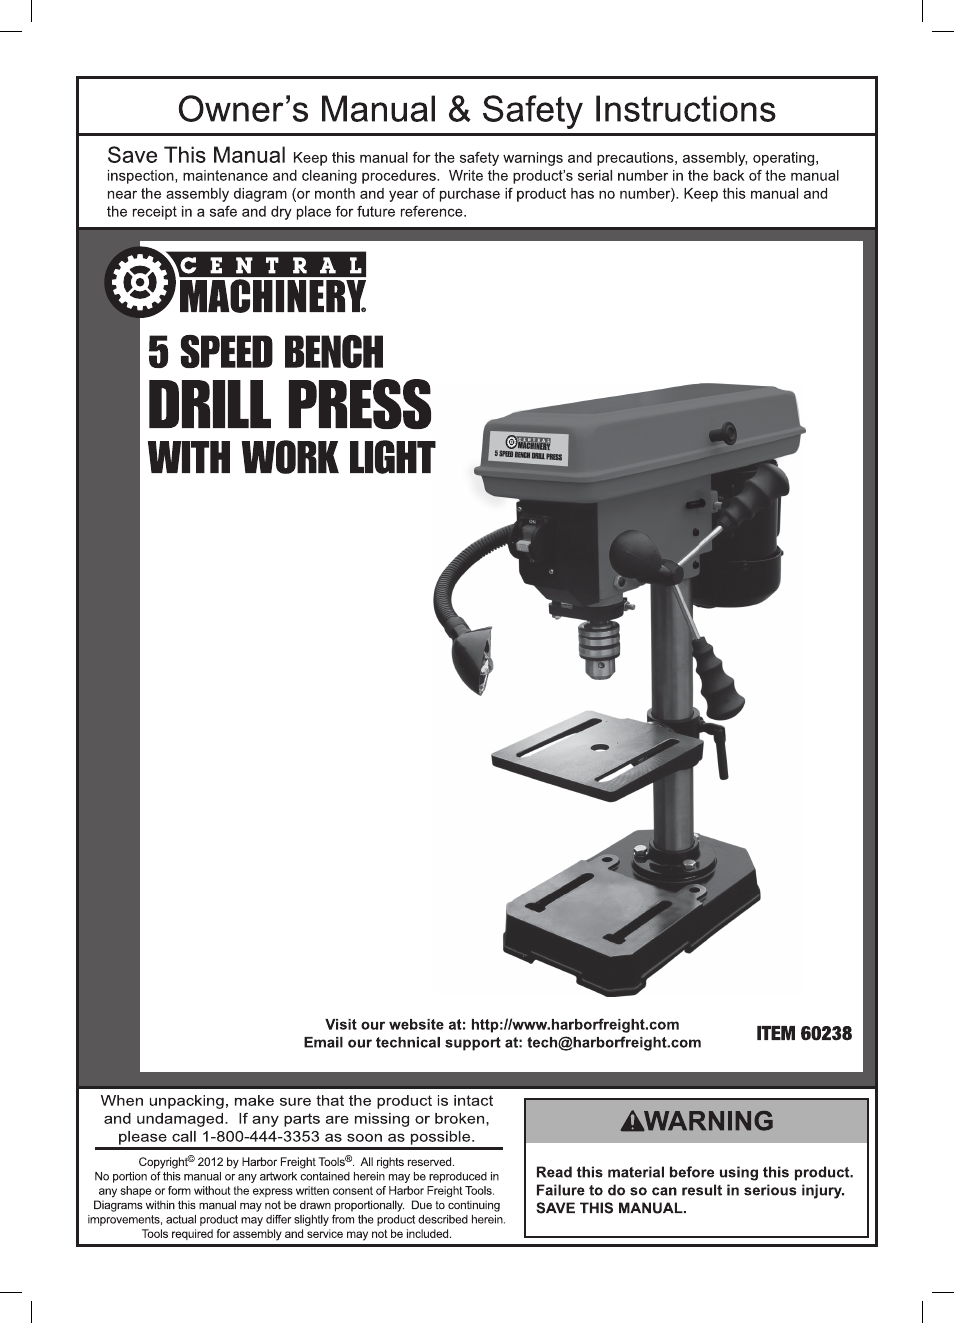 hight resolution of harbor freight tools central machinery 5 speed bench drill press with work light 60238 user manual 16 pages